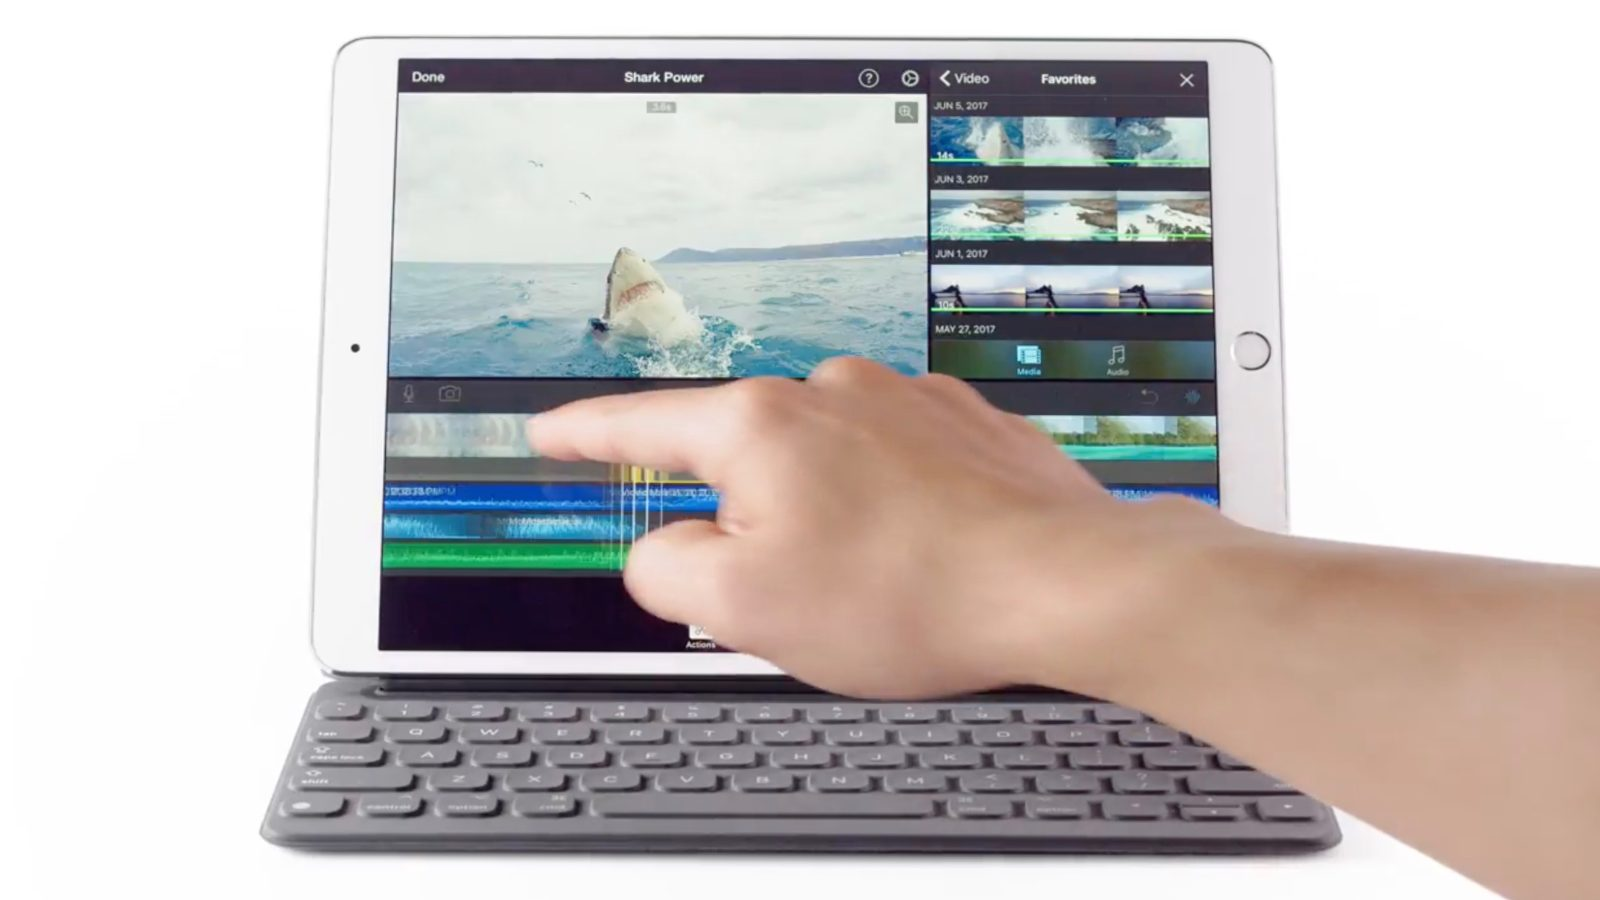 ae367f7c4cf Apple highlights A10X Fusion power, 'no lag' with Pencil in latest iPad Pro  ads